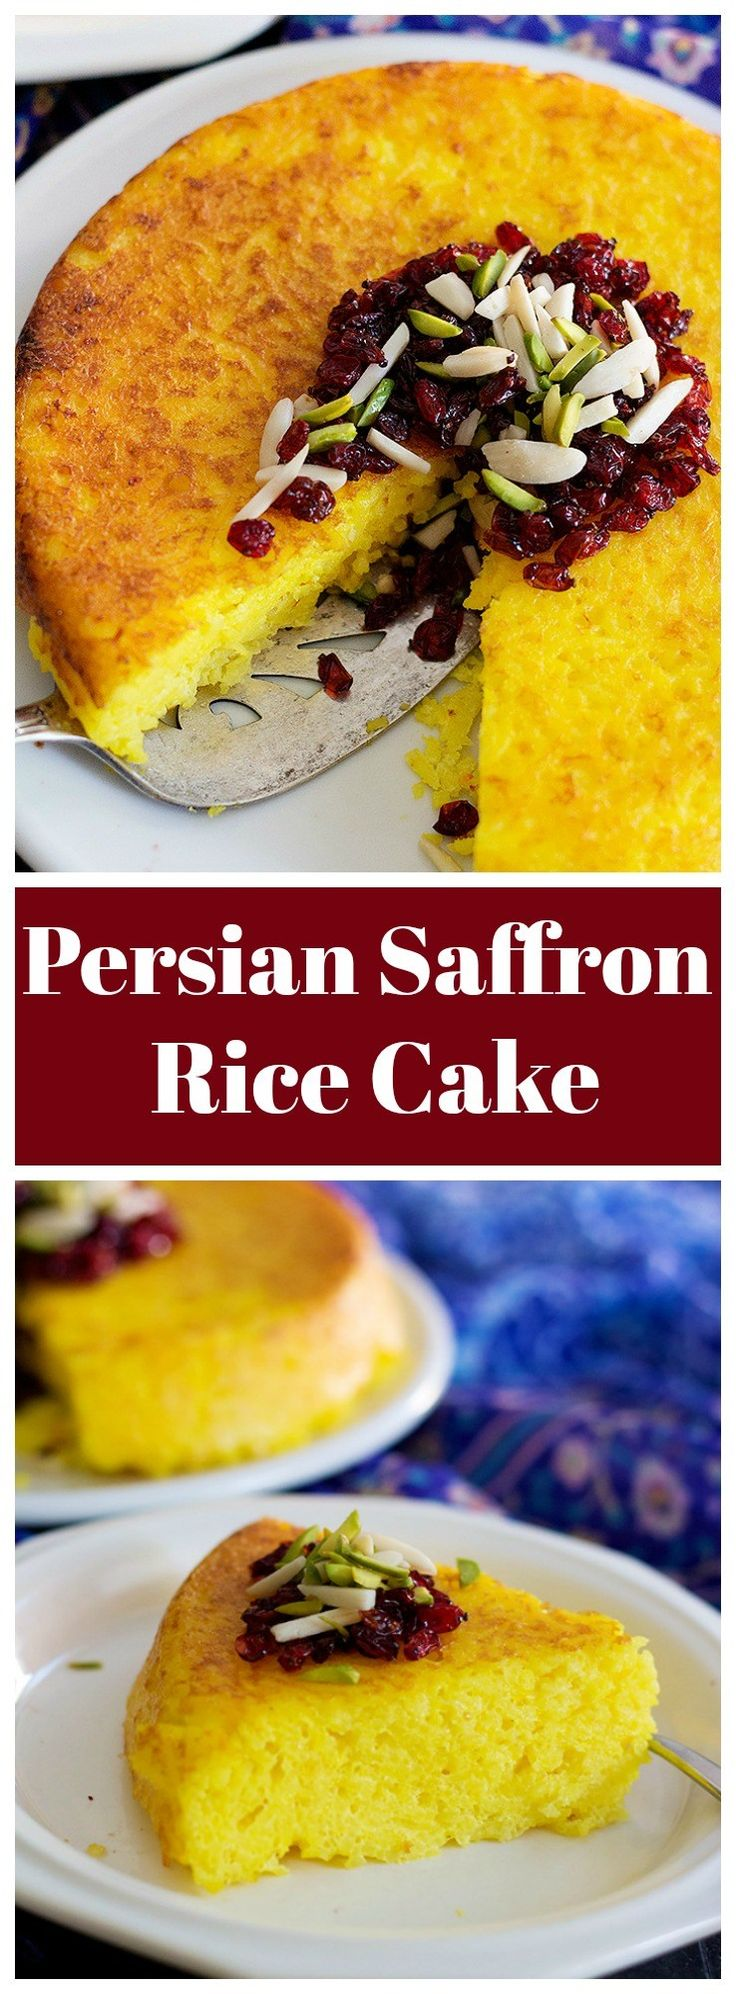 Persian Savory Saffron Cake – Tahchin is a very delicious traditional Persian rice dish full of saffron and great flavors. It is usually served with chicken in tomato sauce.